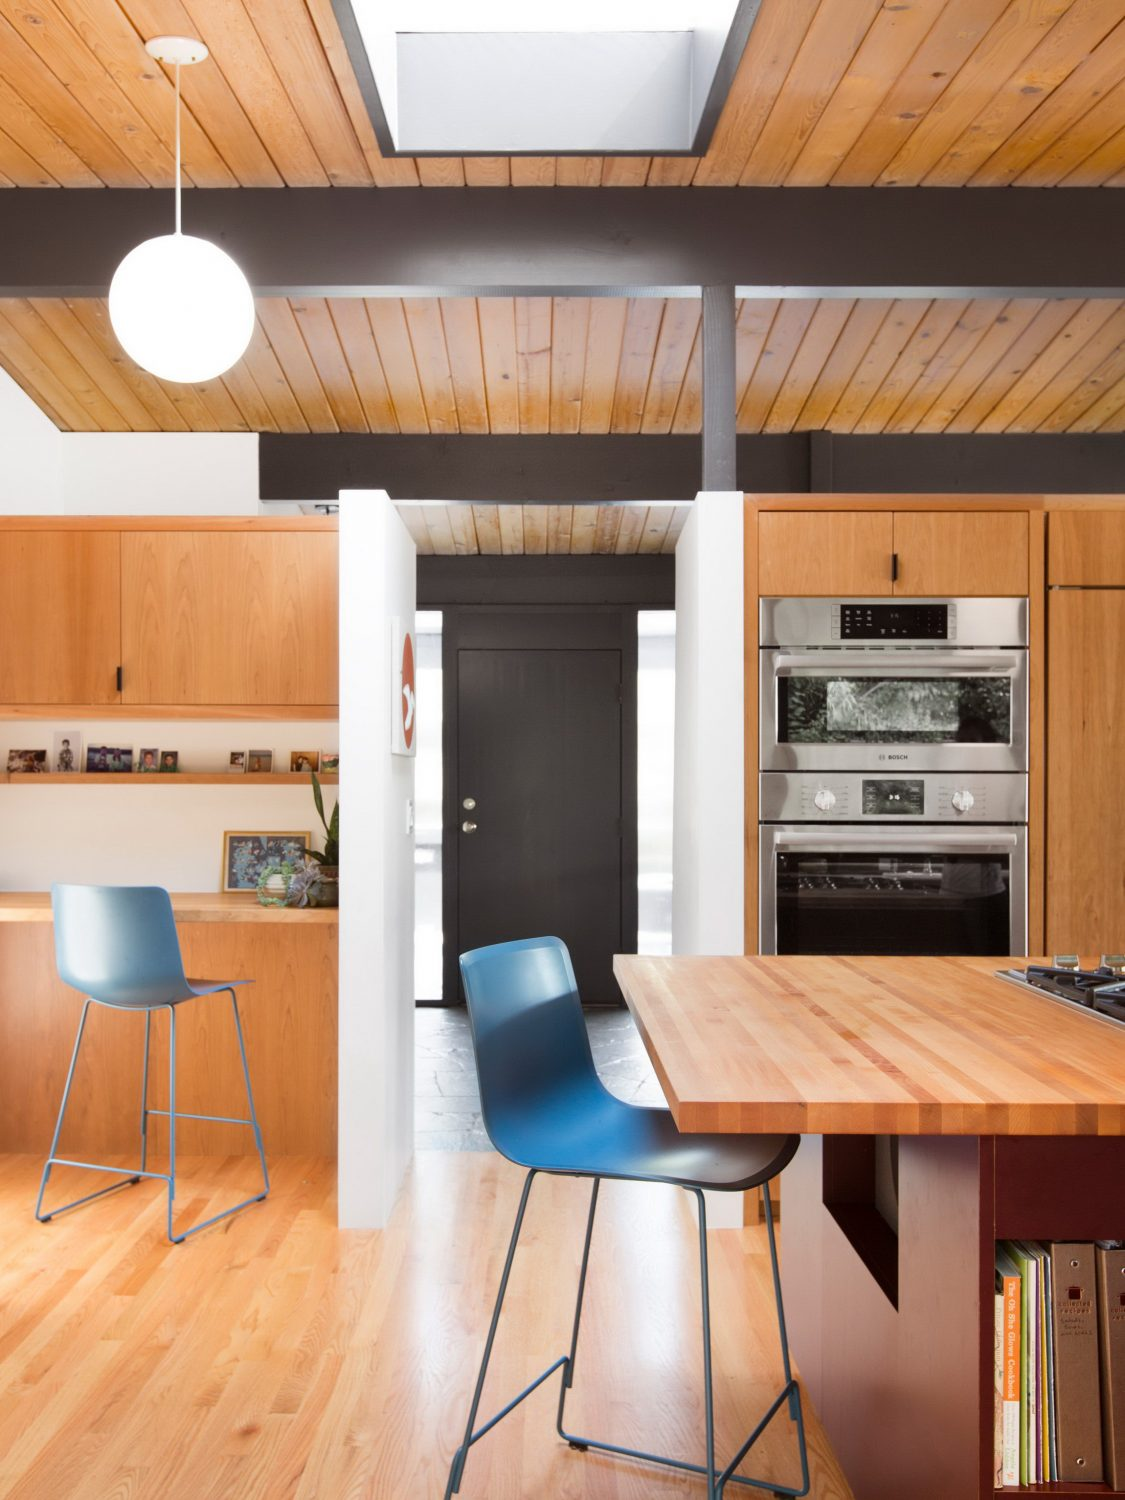 Hillside Midcentury   Mid Century Modern Home Renovation by SHED